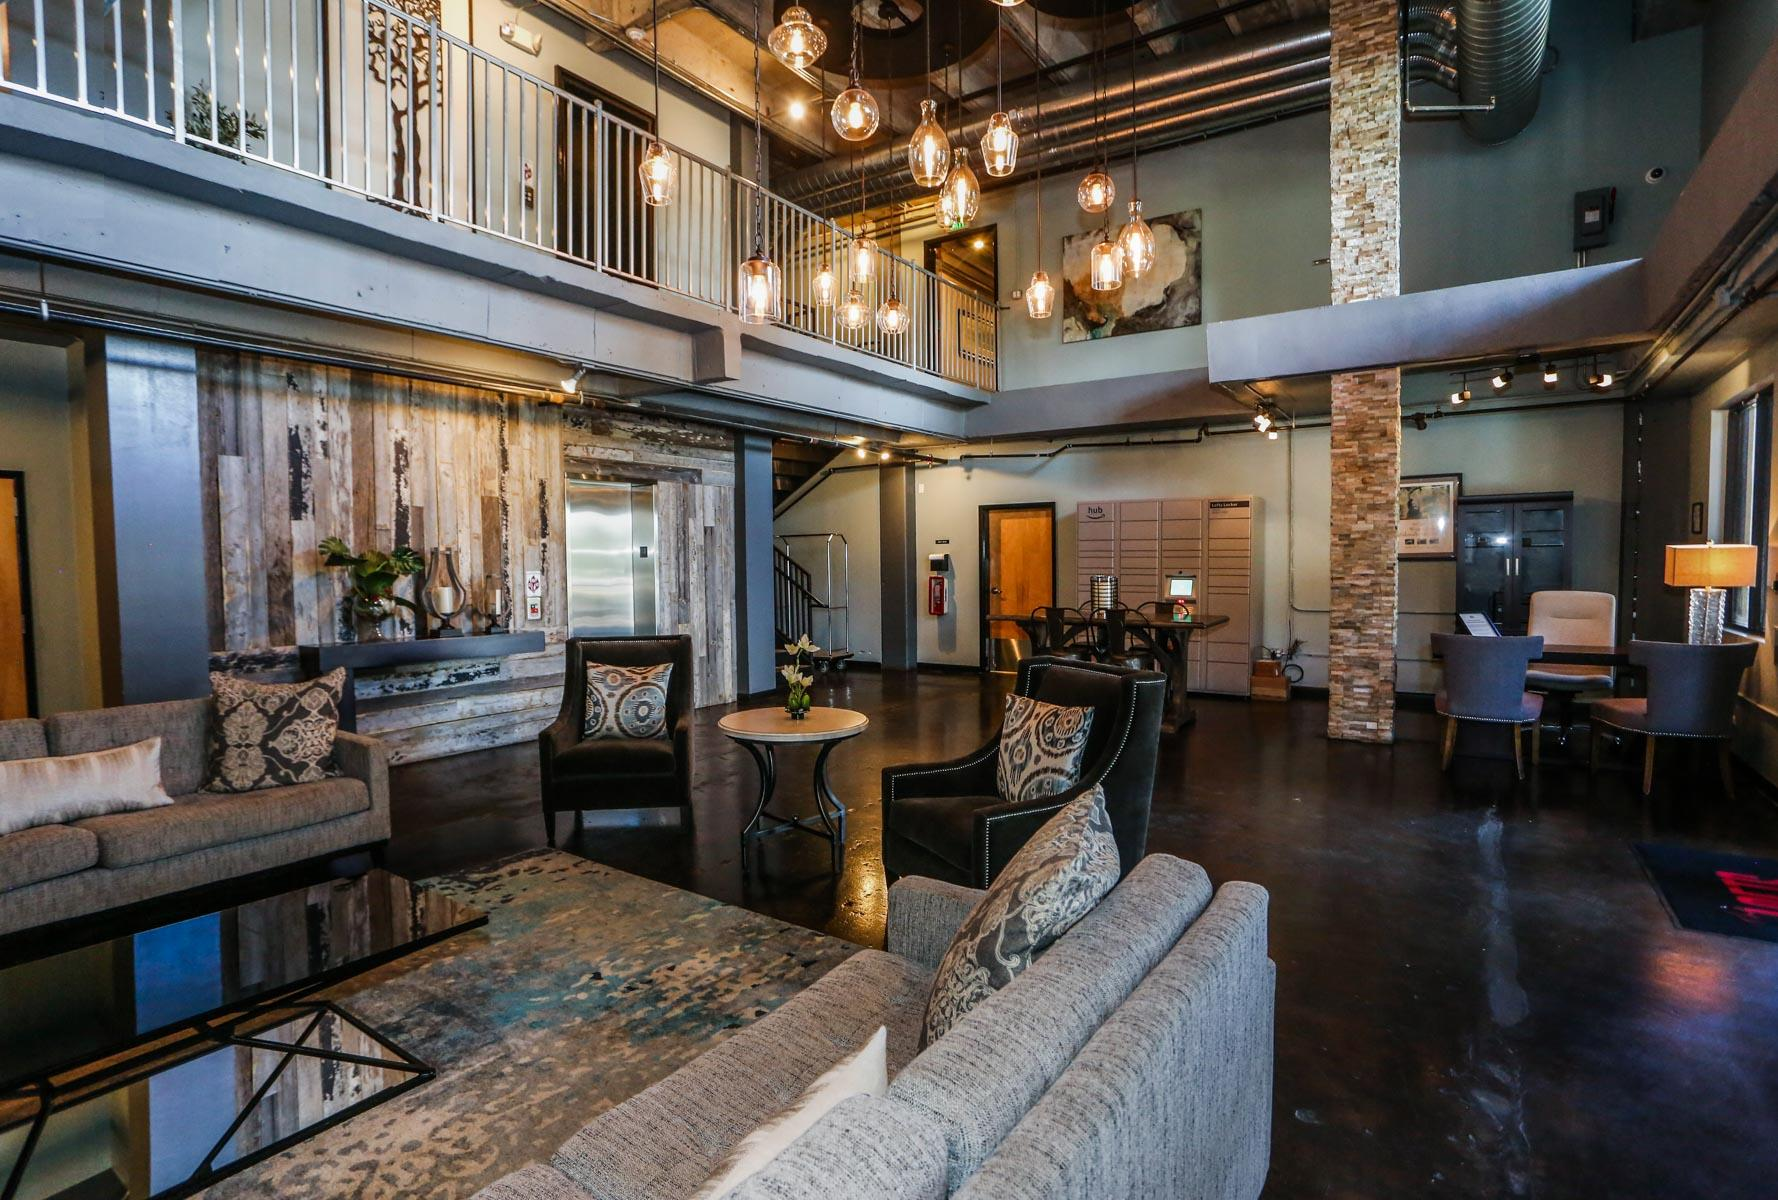 The Lofts Paseo At Winter Park Village